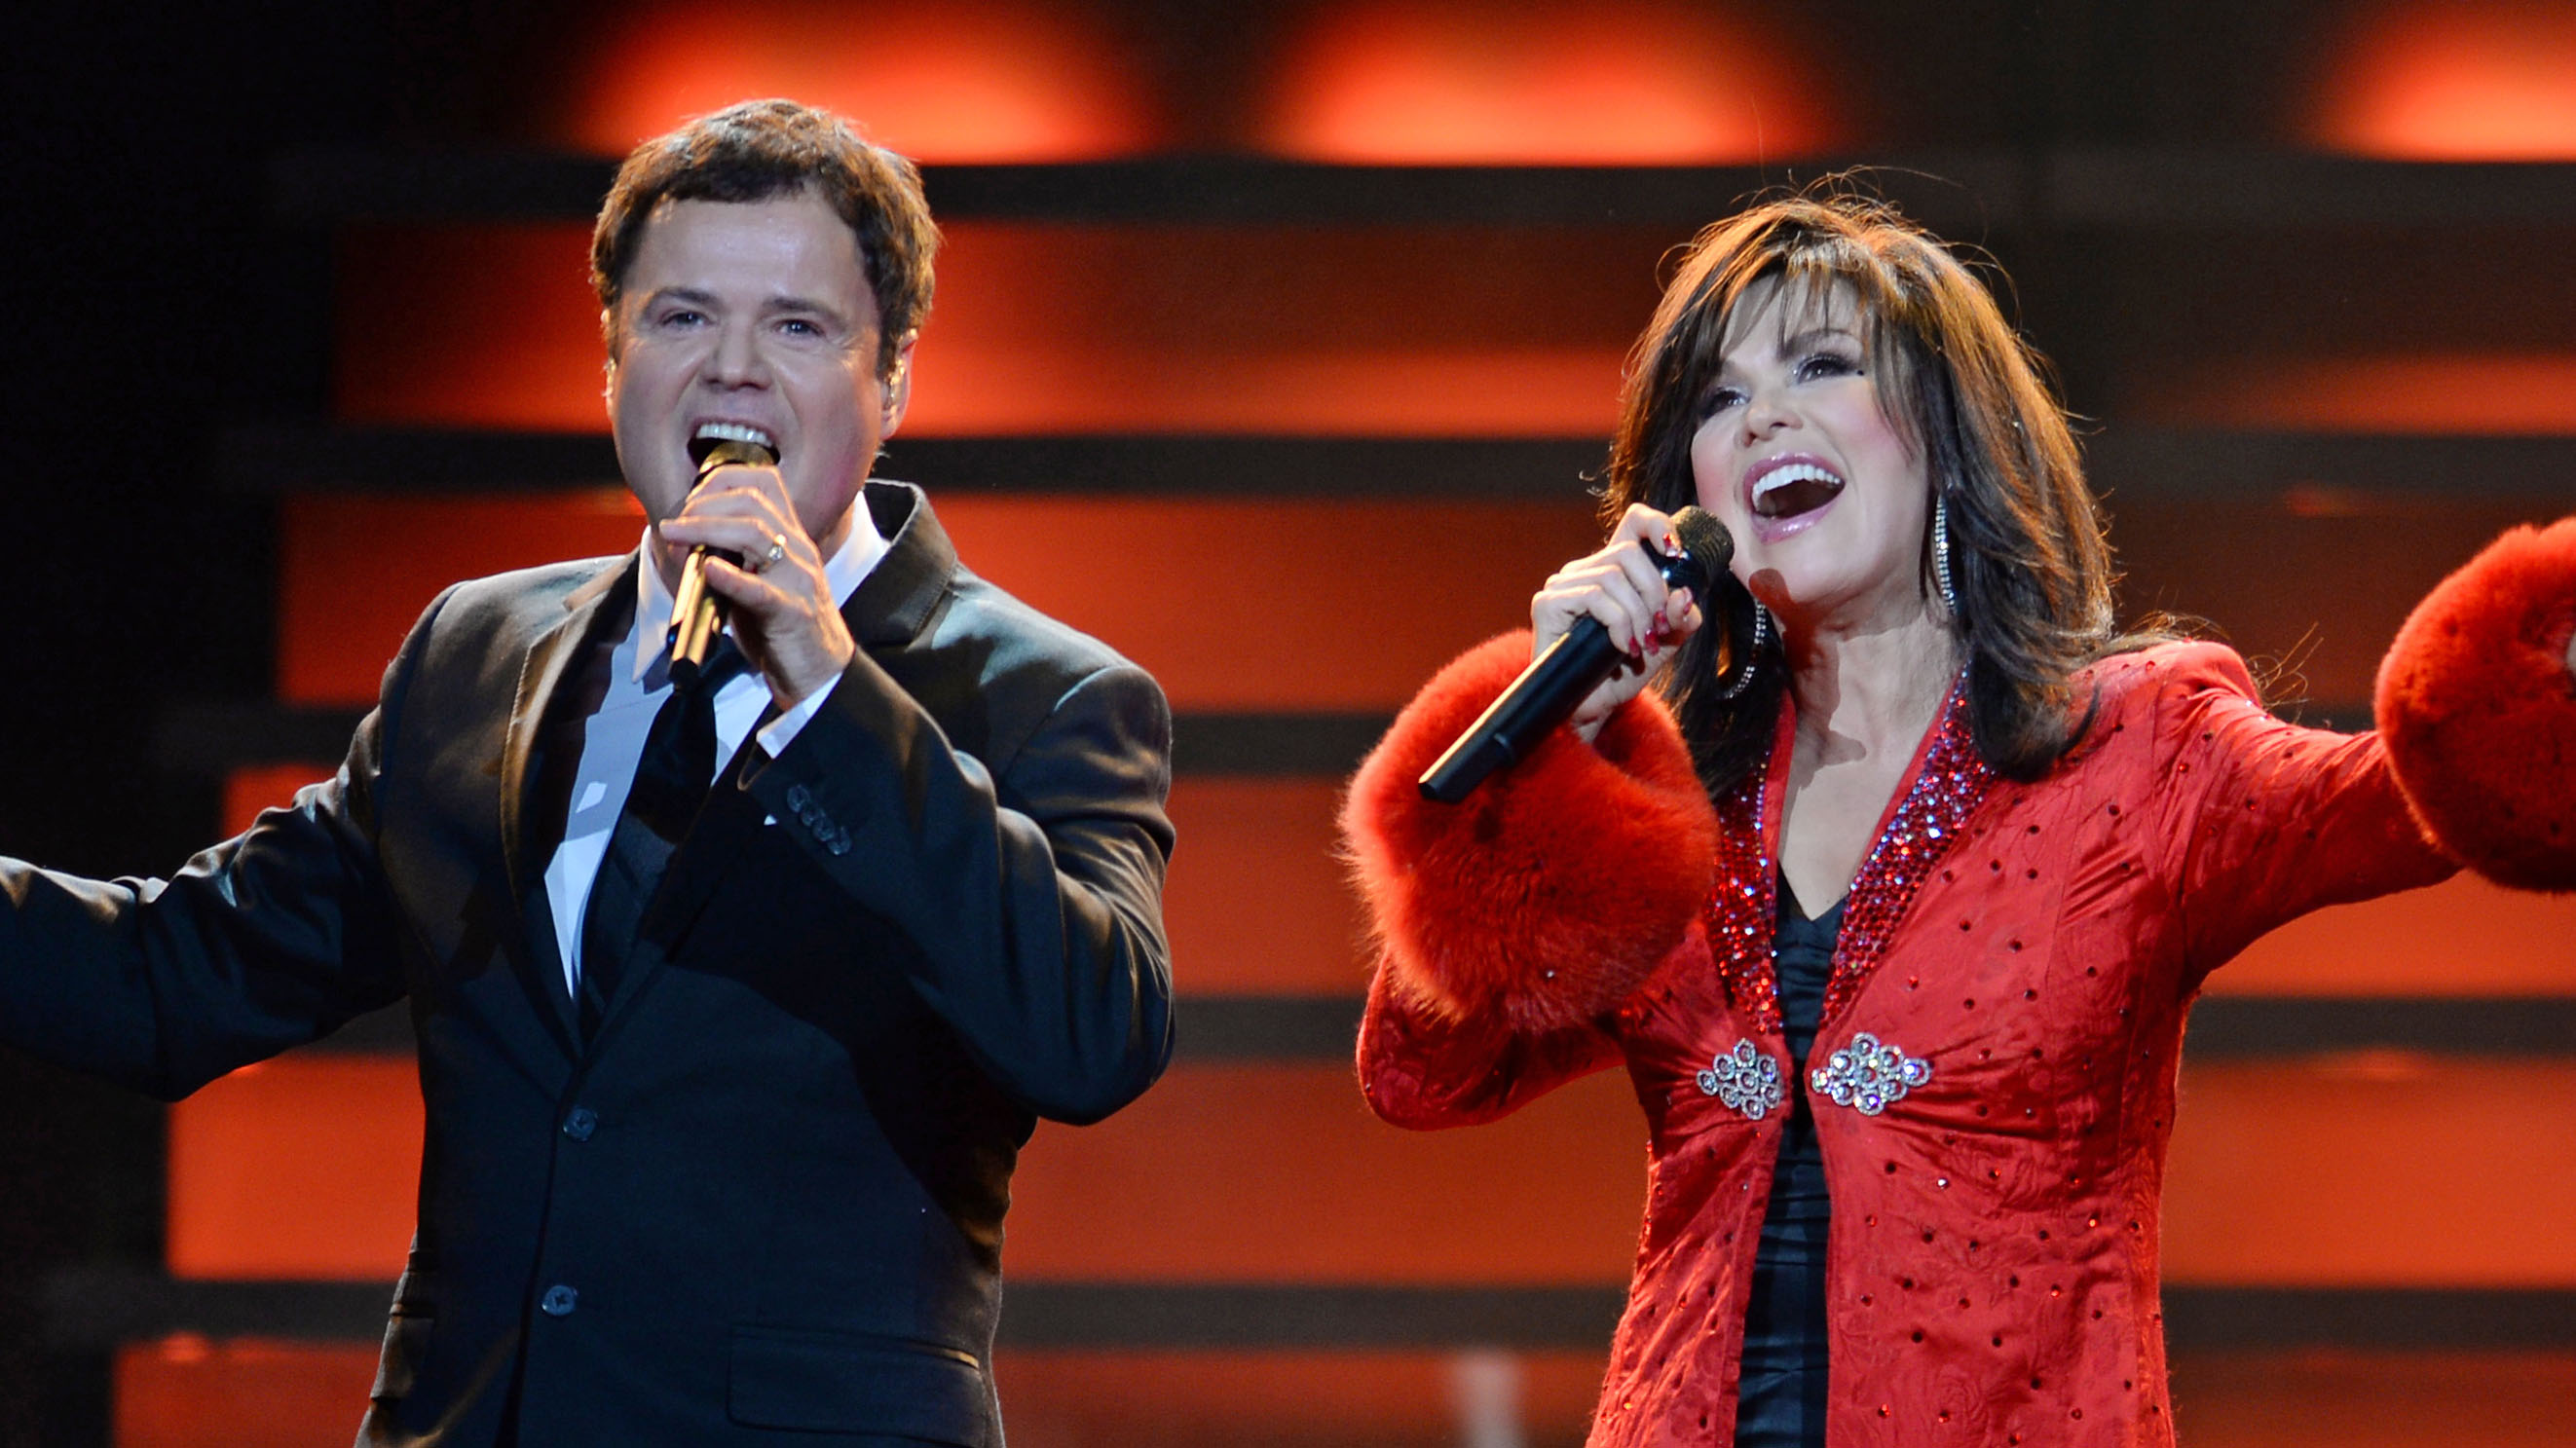 2dab455ee0d Donny and Marie Osmond Announce the End of Their Las Vegas Residency:  'We've Had the Time of Our Lives'